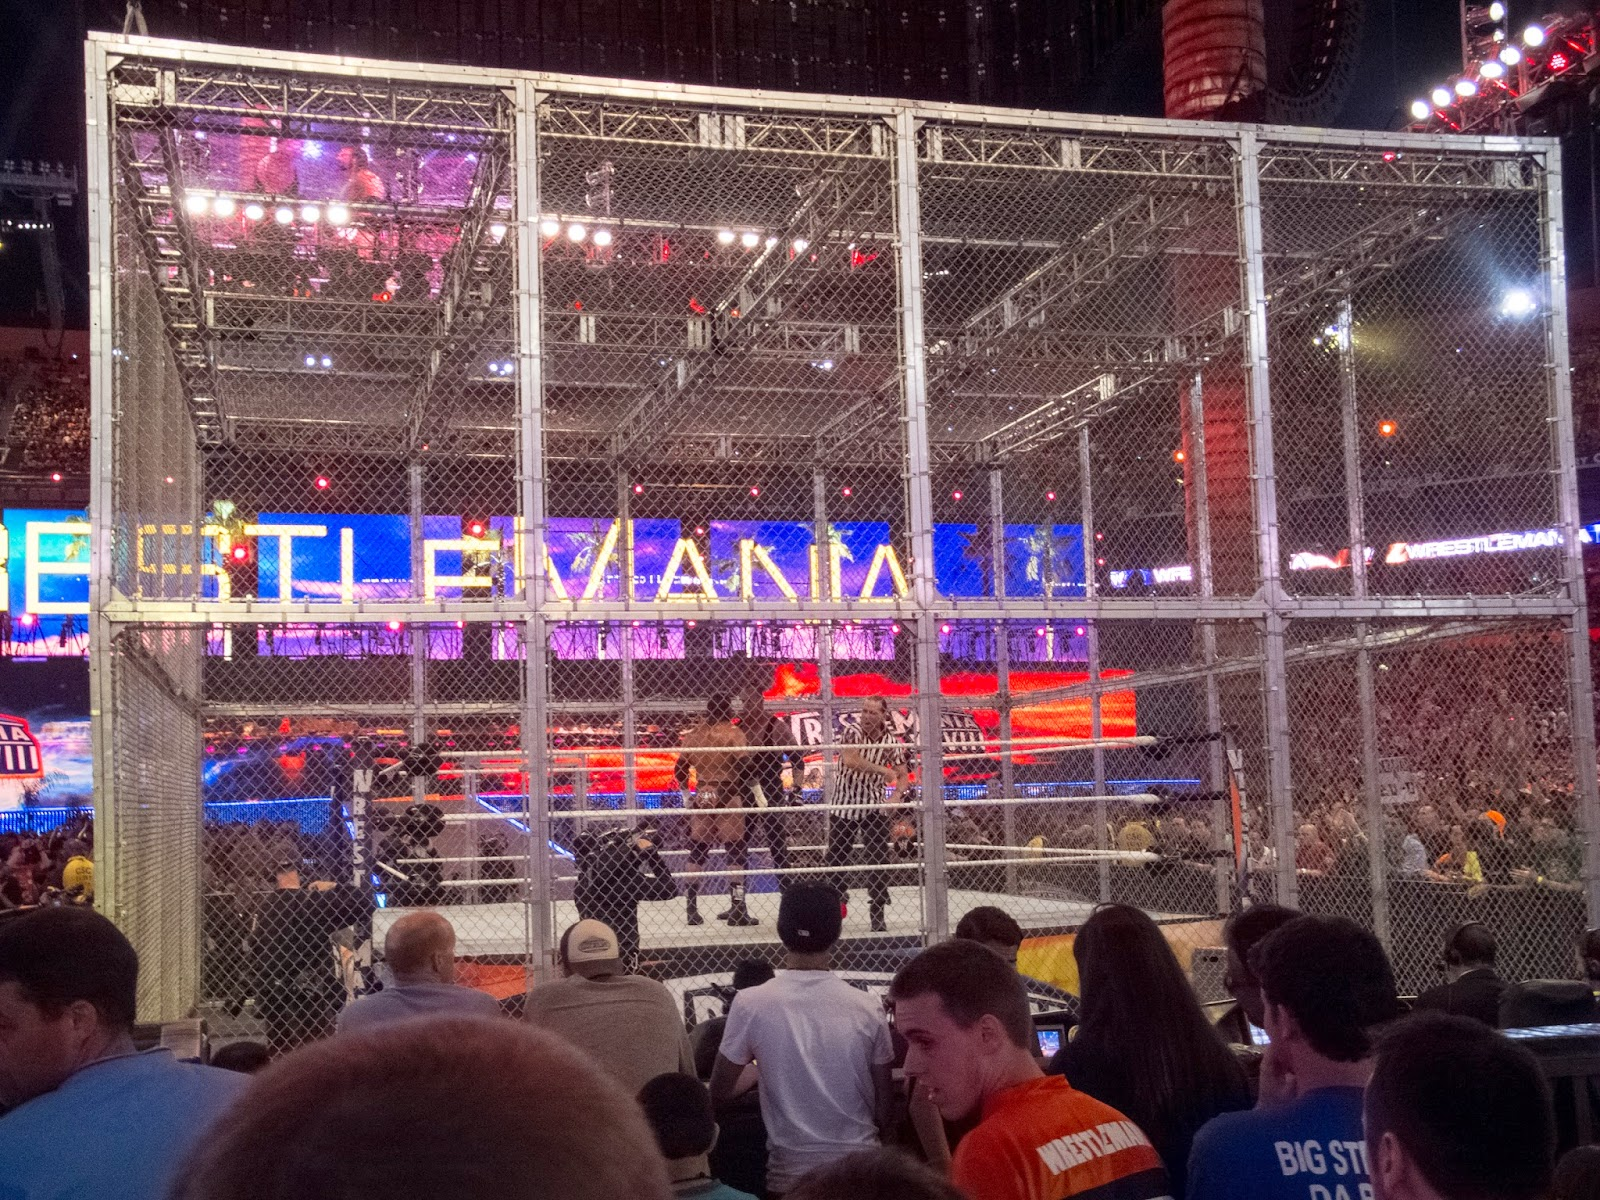 WrestleMania 28 Hell in a Cell Match photos